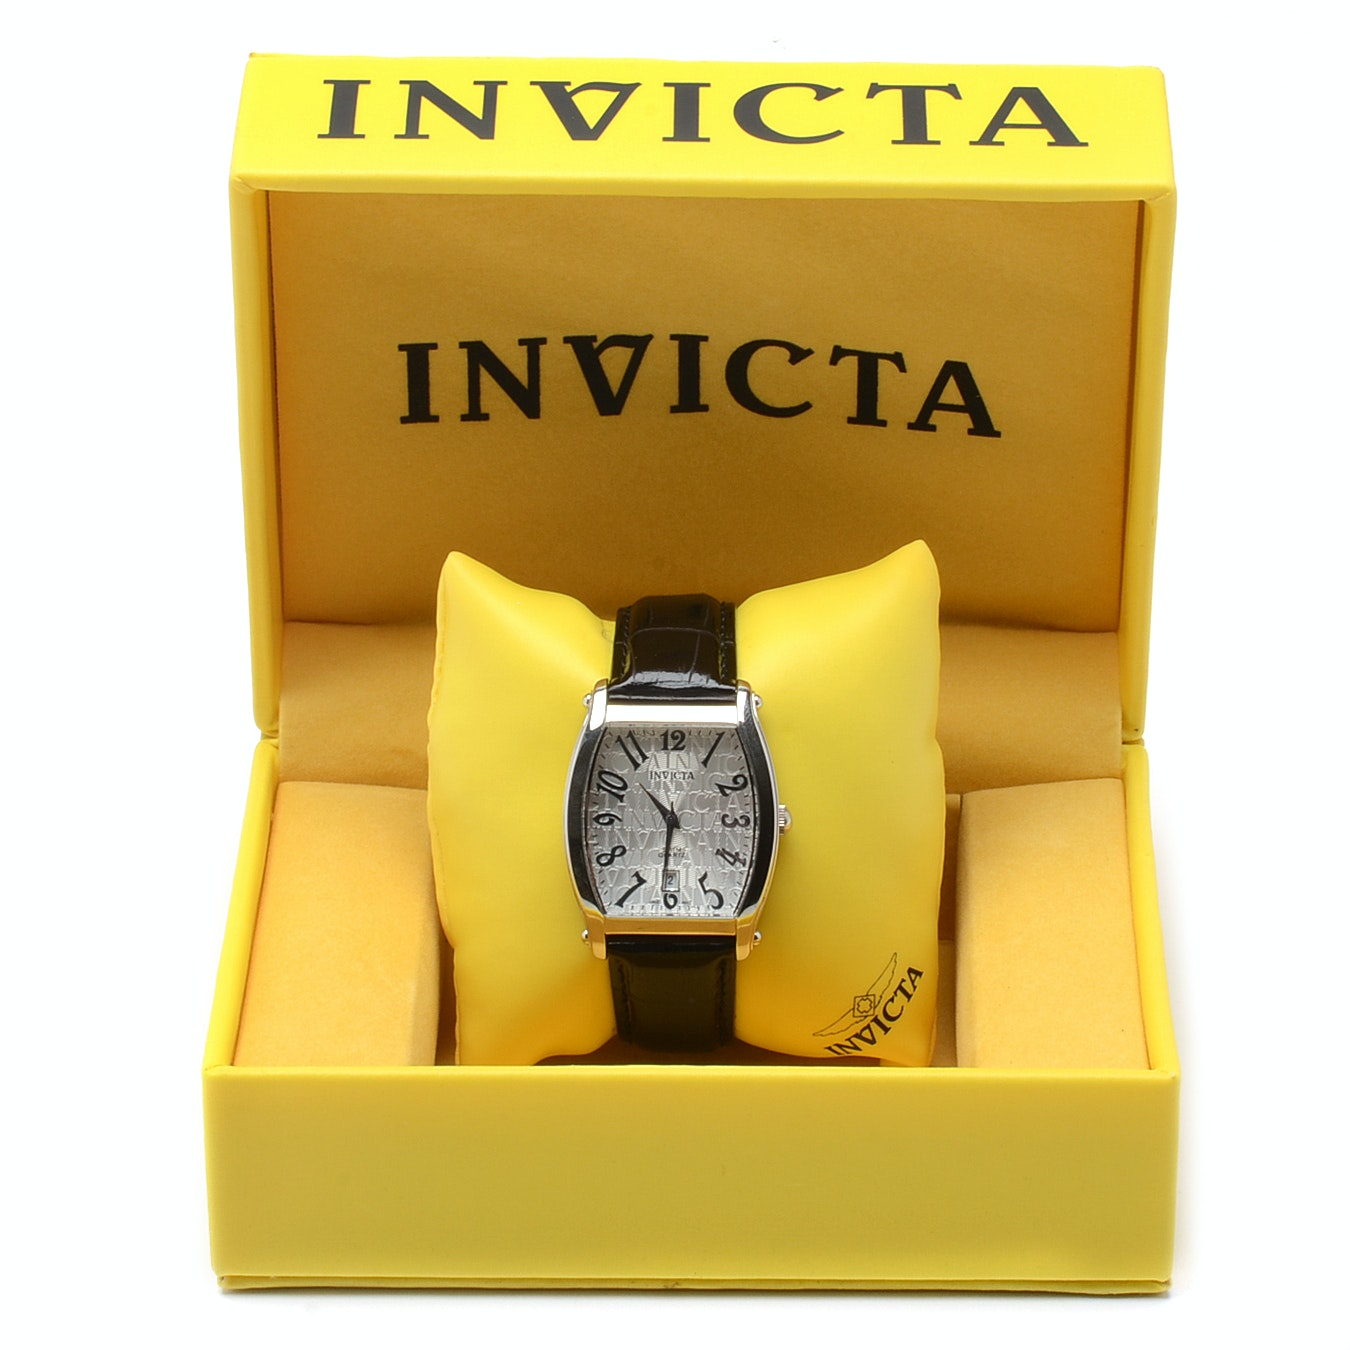 Invicta Stainless Steel Quartz Wristwatch with Box